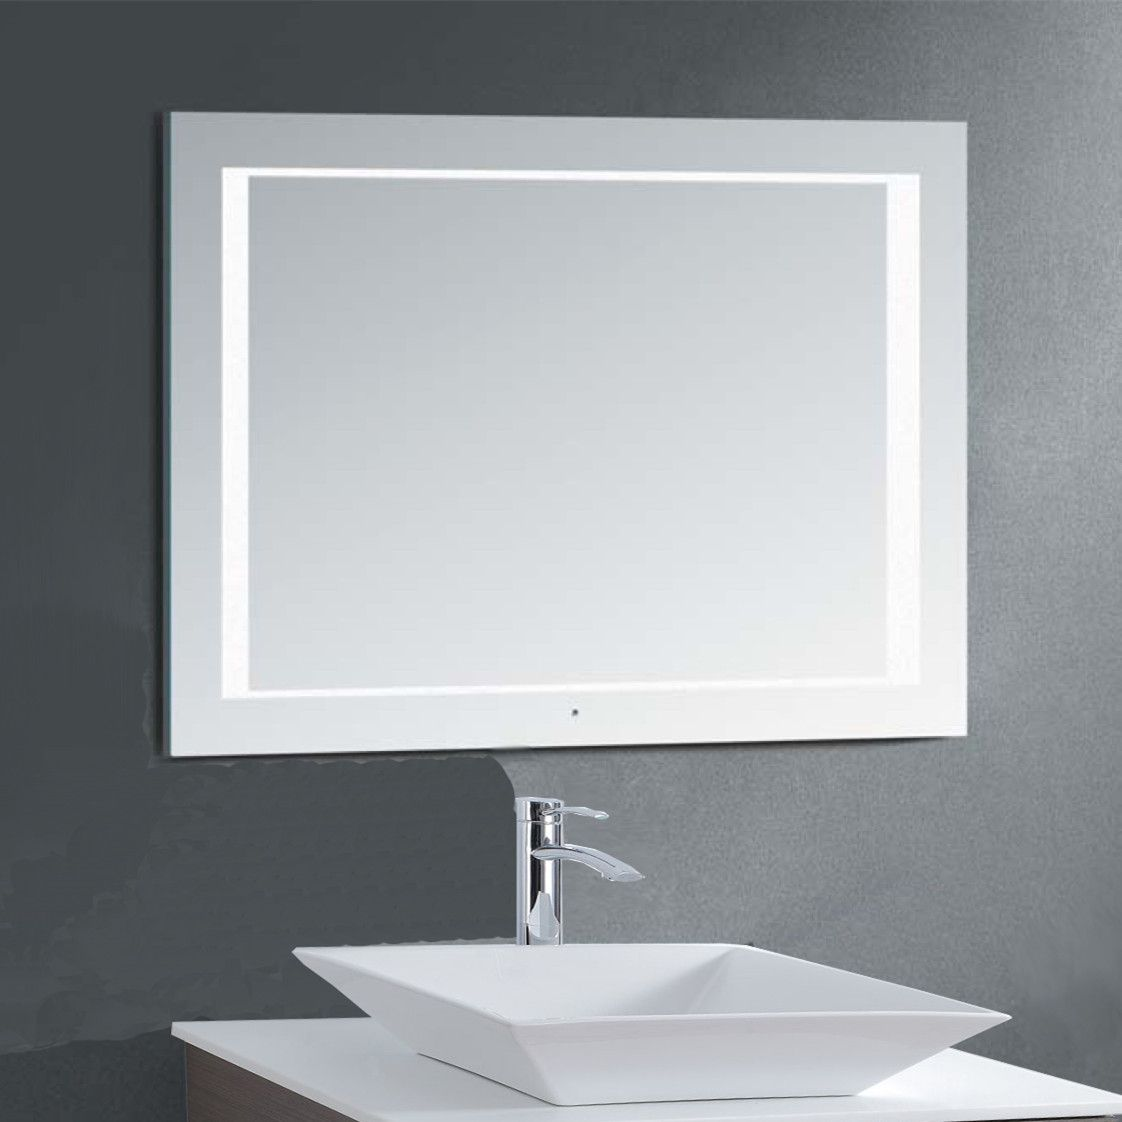 led anti-fog bathroom mirror No more foggy mirrors! | Mi||ion $ hou ...